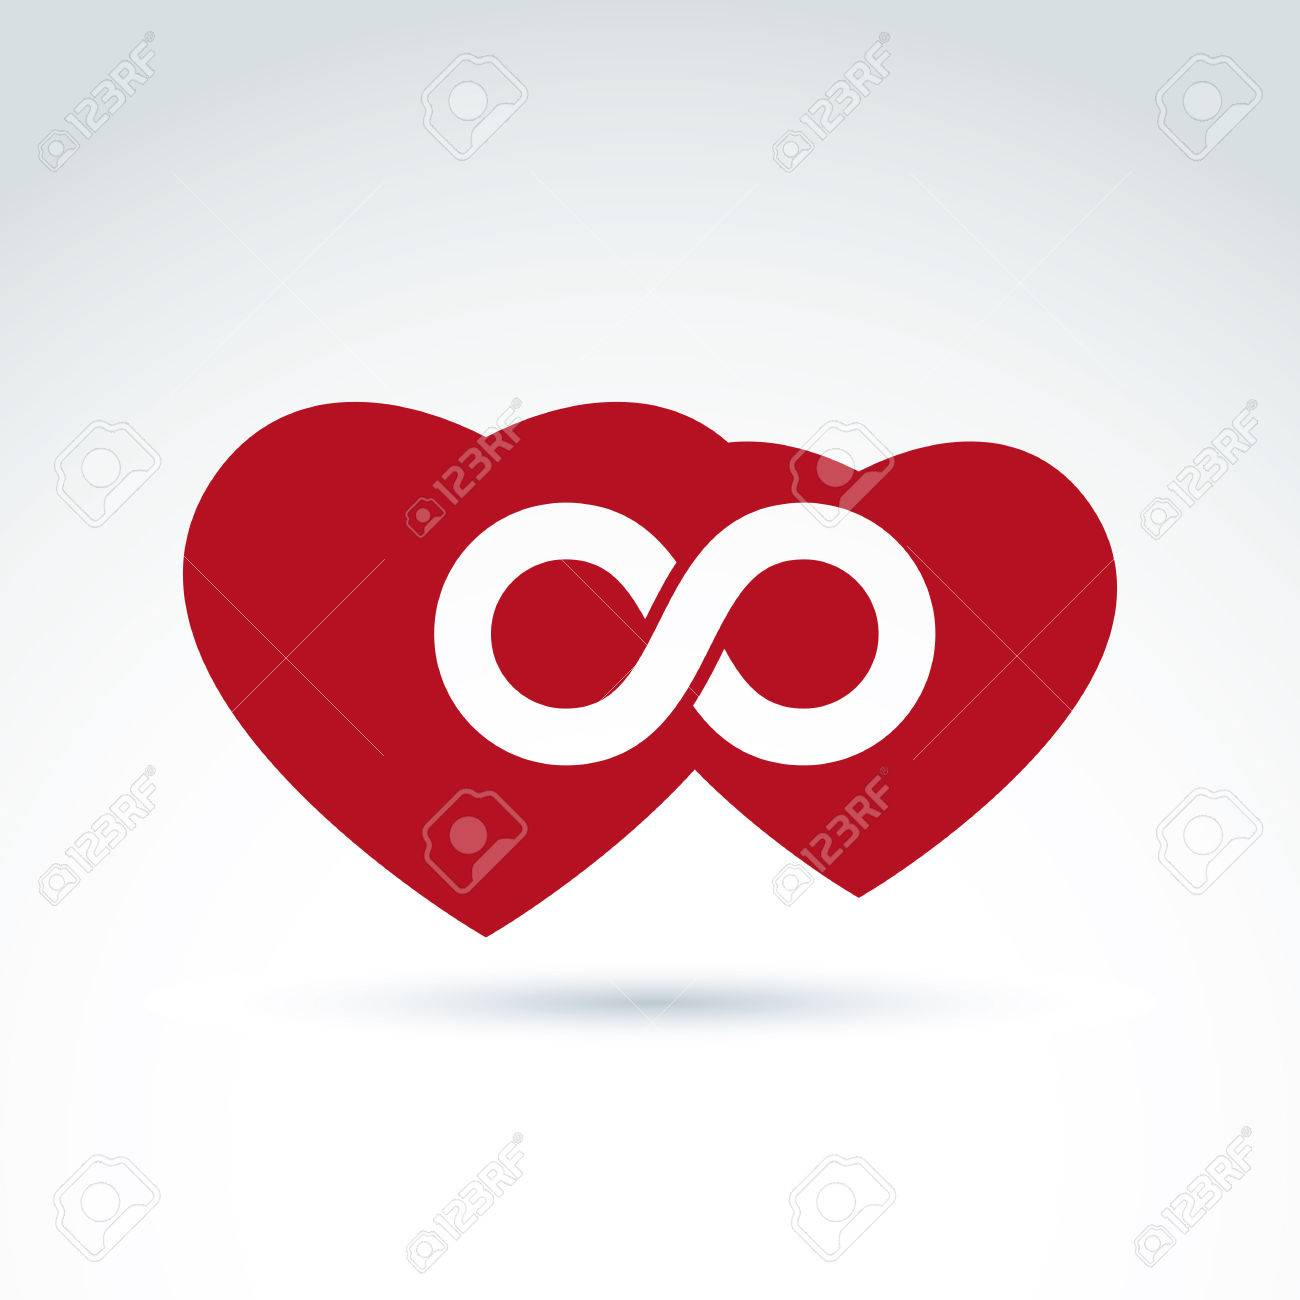 Vector infinity icon illustration of an eternity symbol placed on illustration of an eternity symbol placed on a red heart love biocorpaavc Images